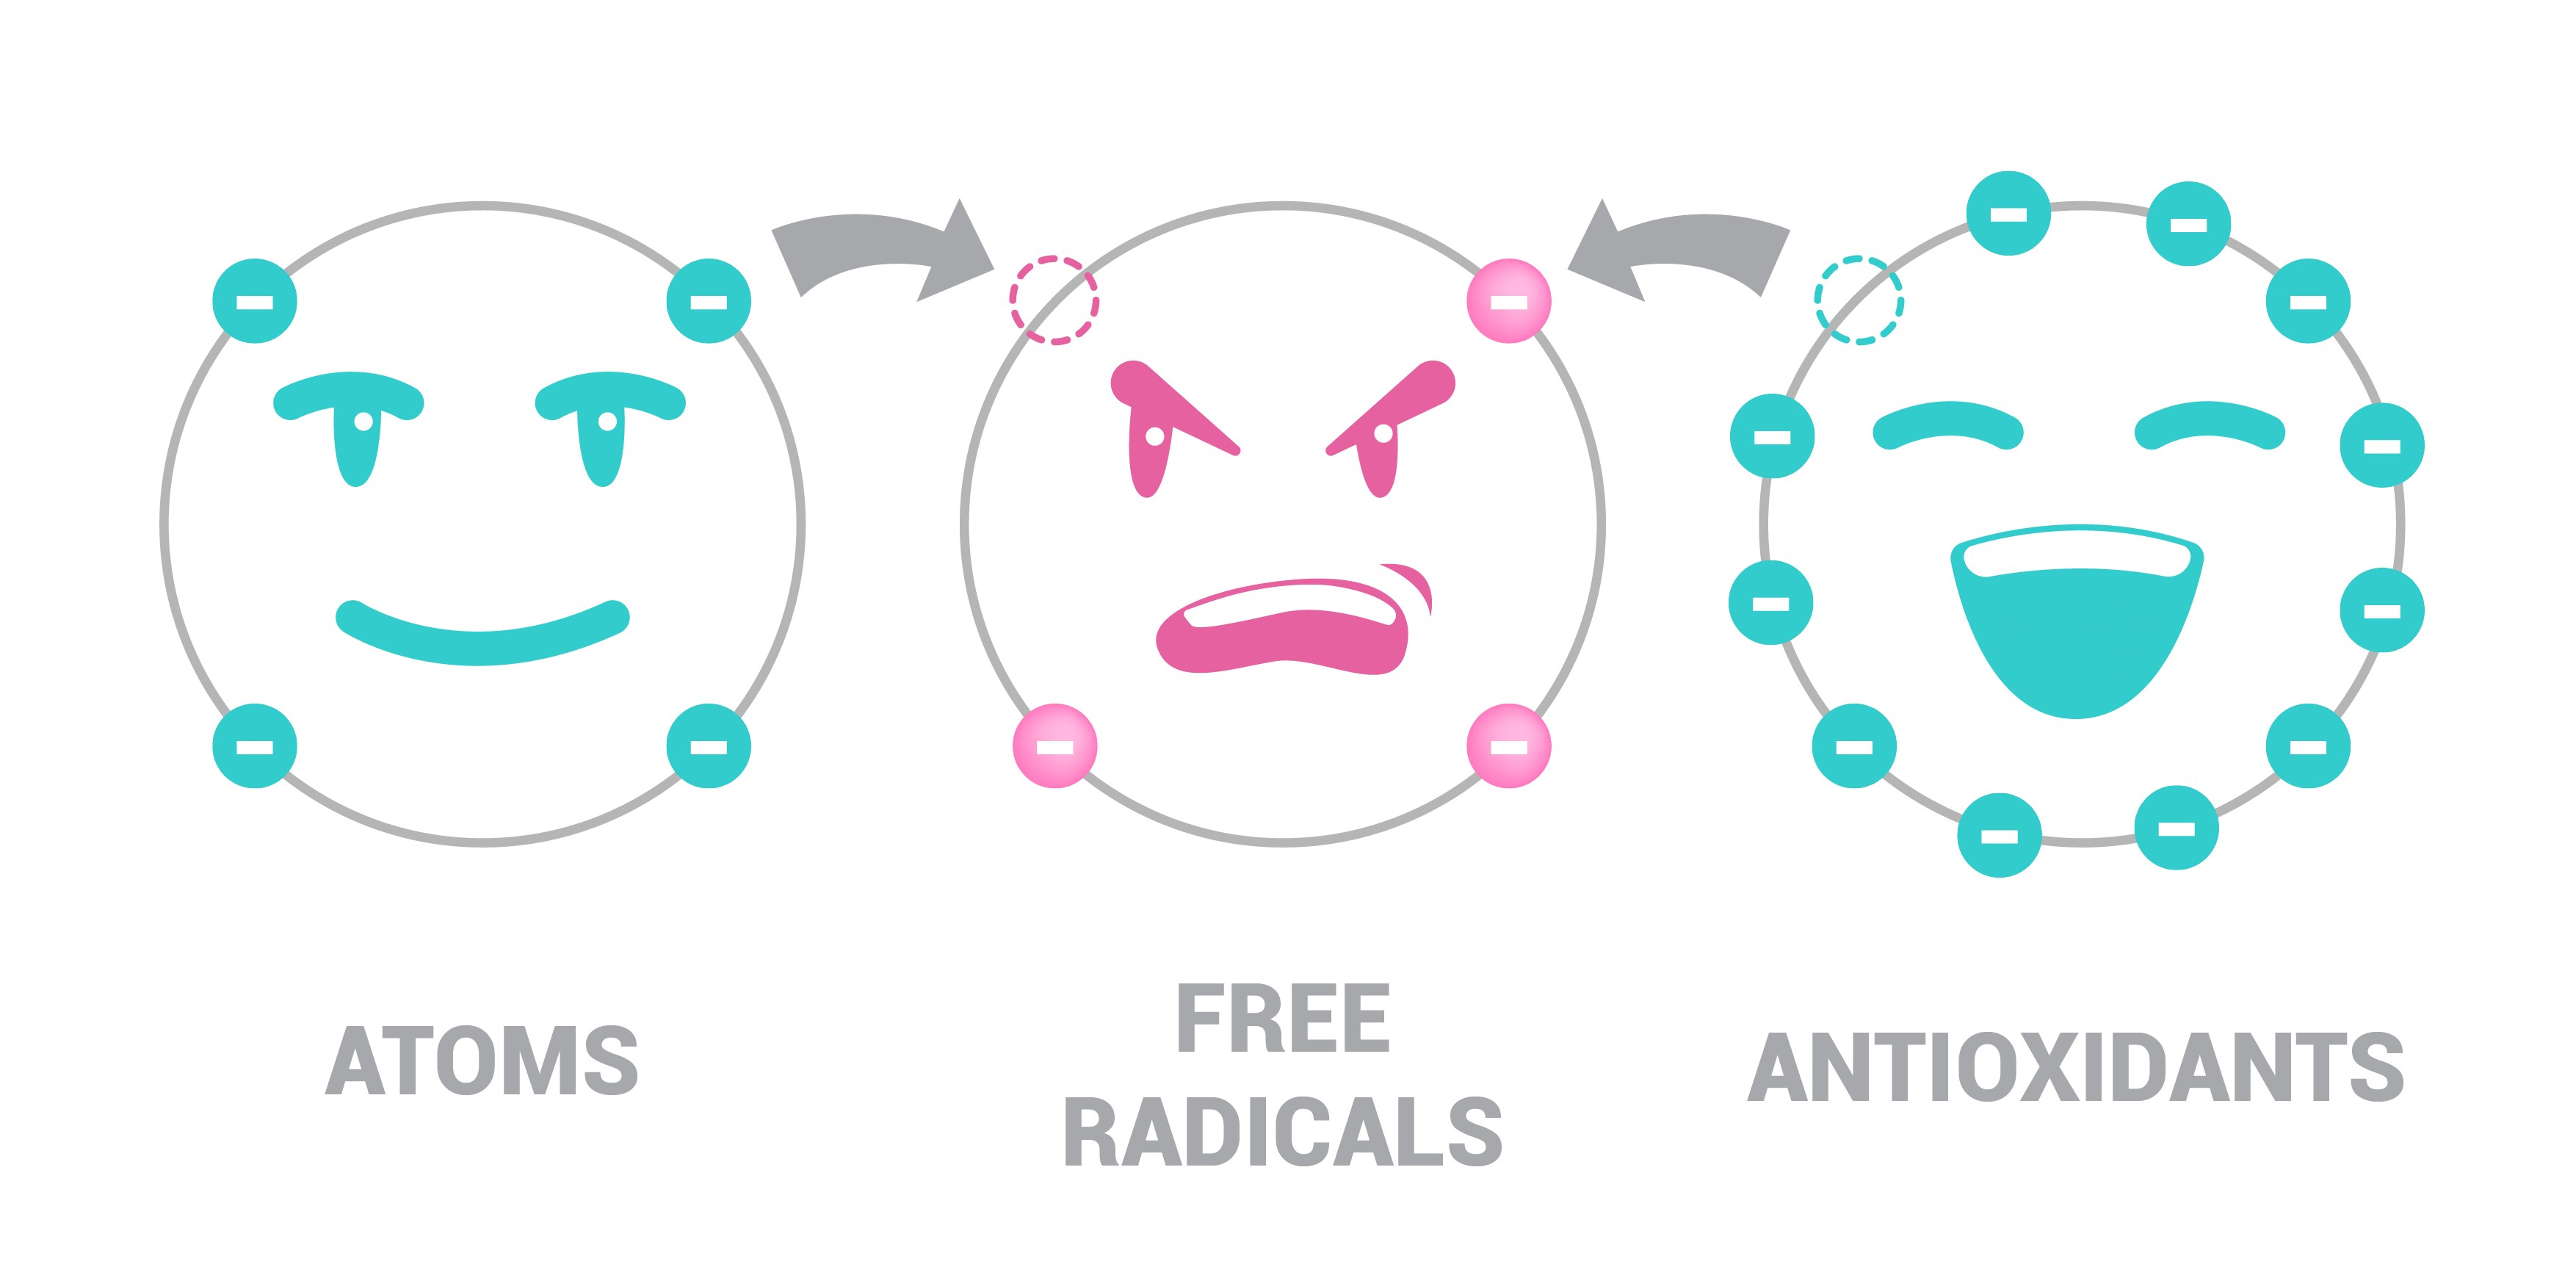 Illustration on free radicals